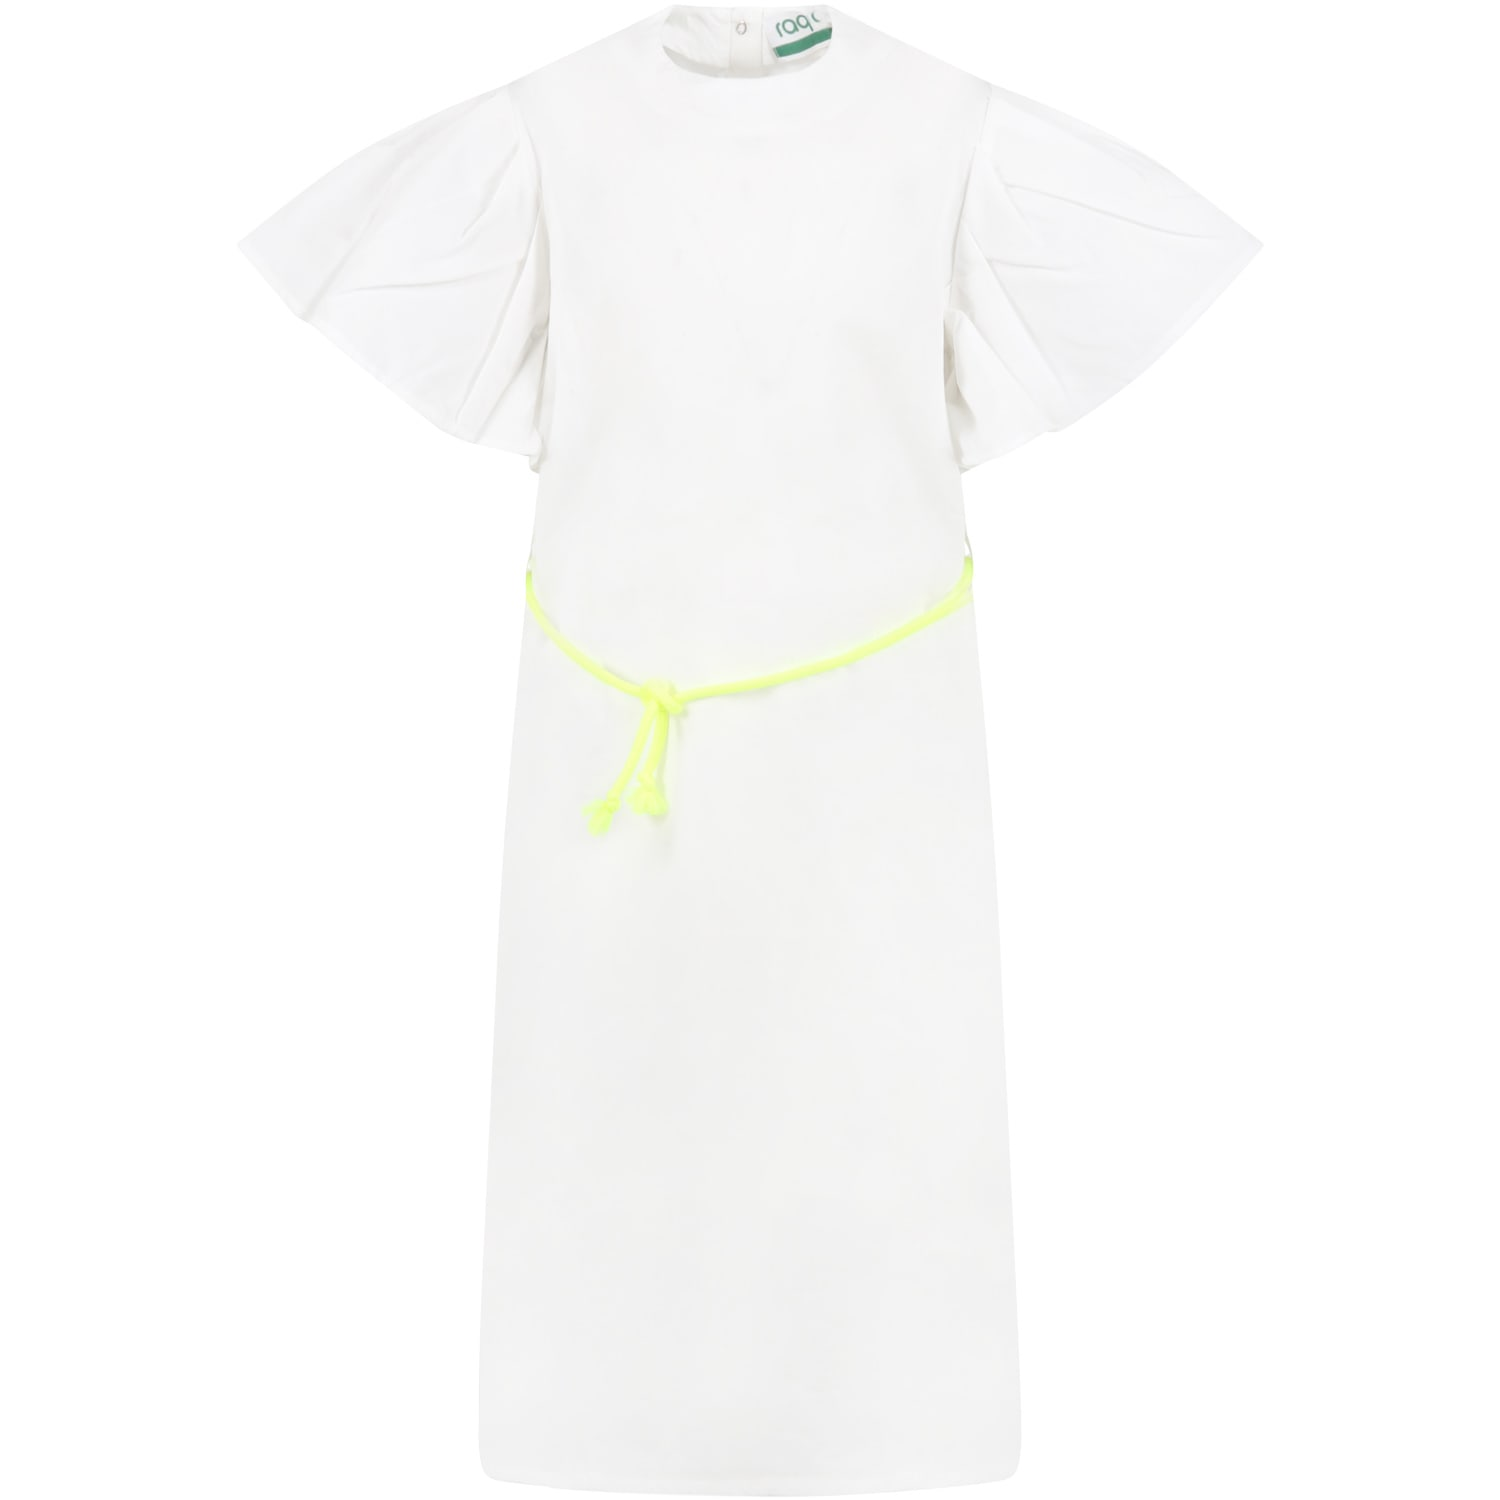 Buy Raquette White Dress For Girl With Logo online, shop Raquette with free shipping